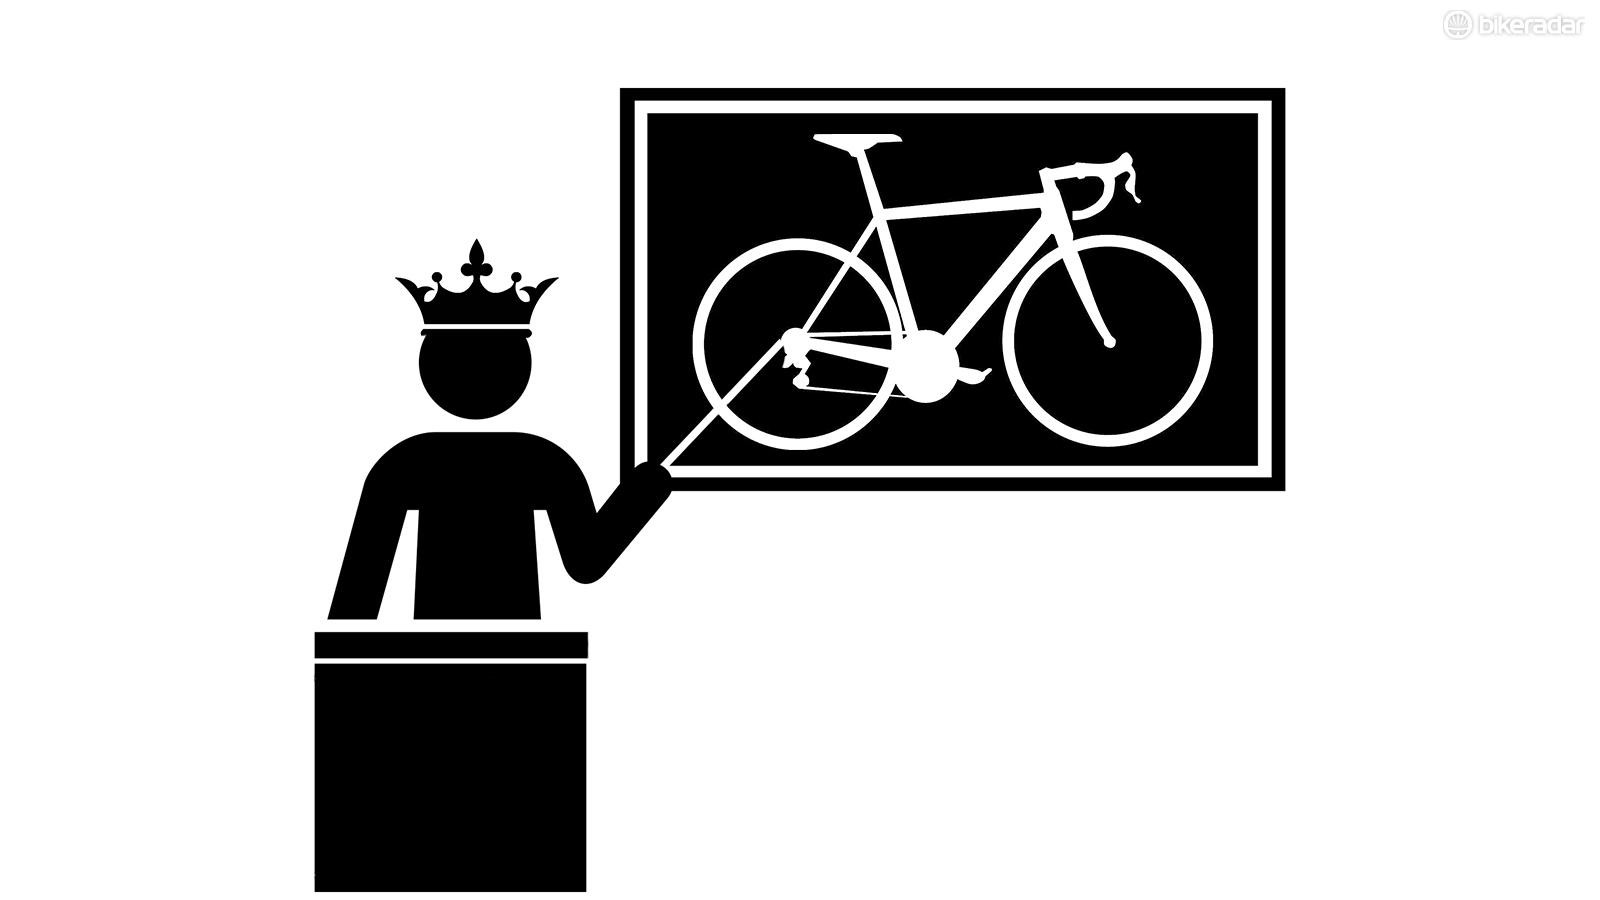 If you were the Bike Czar, what would you change?